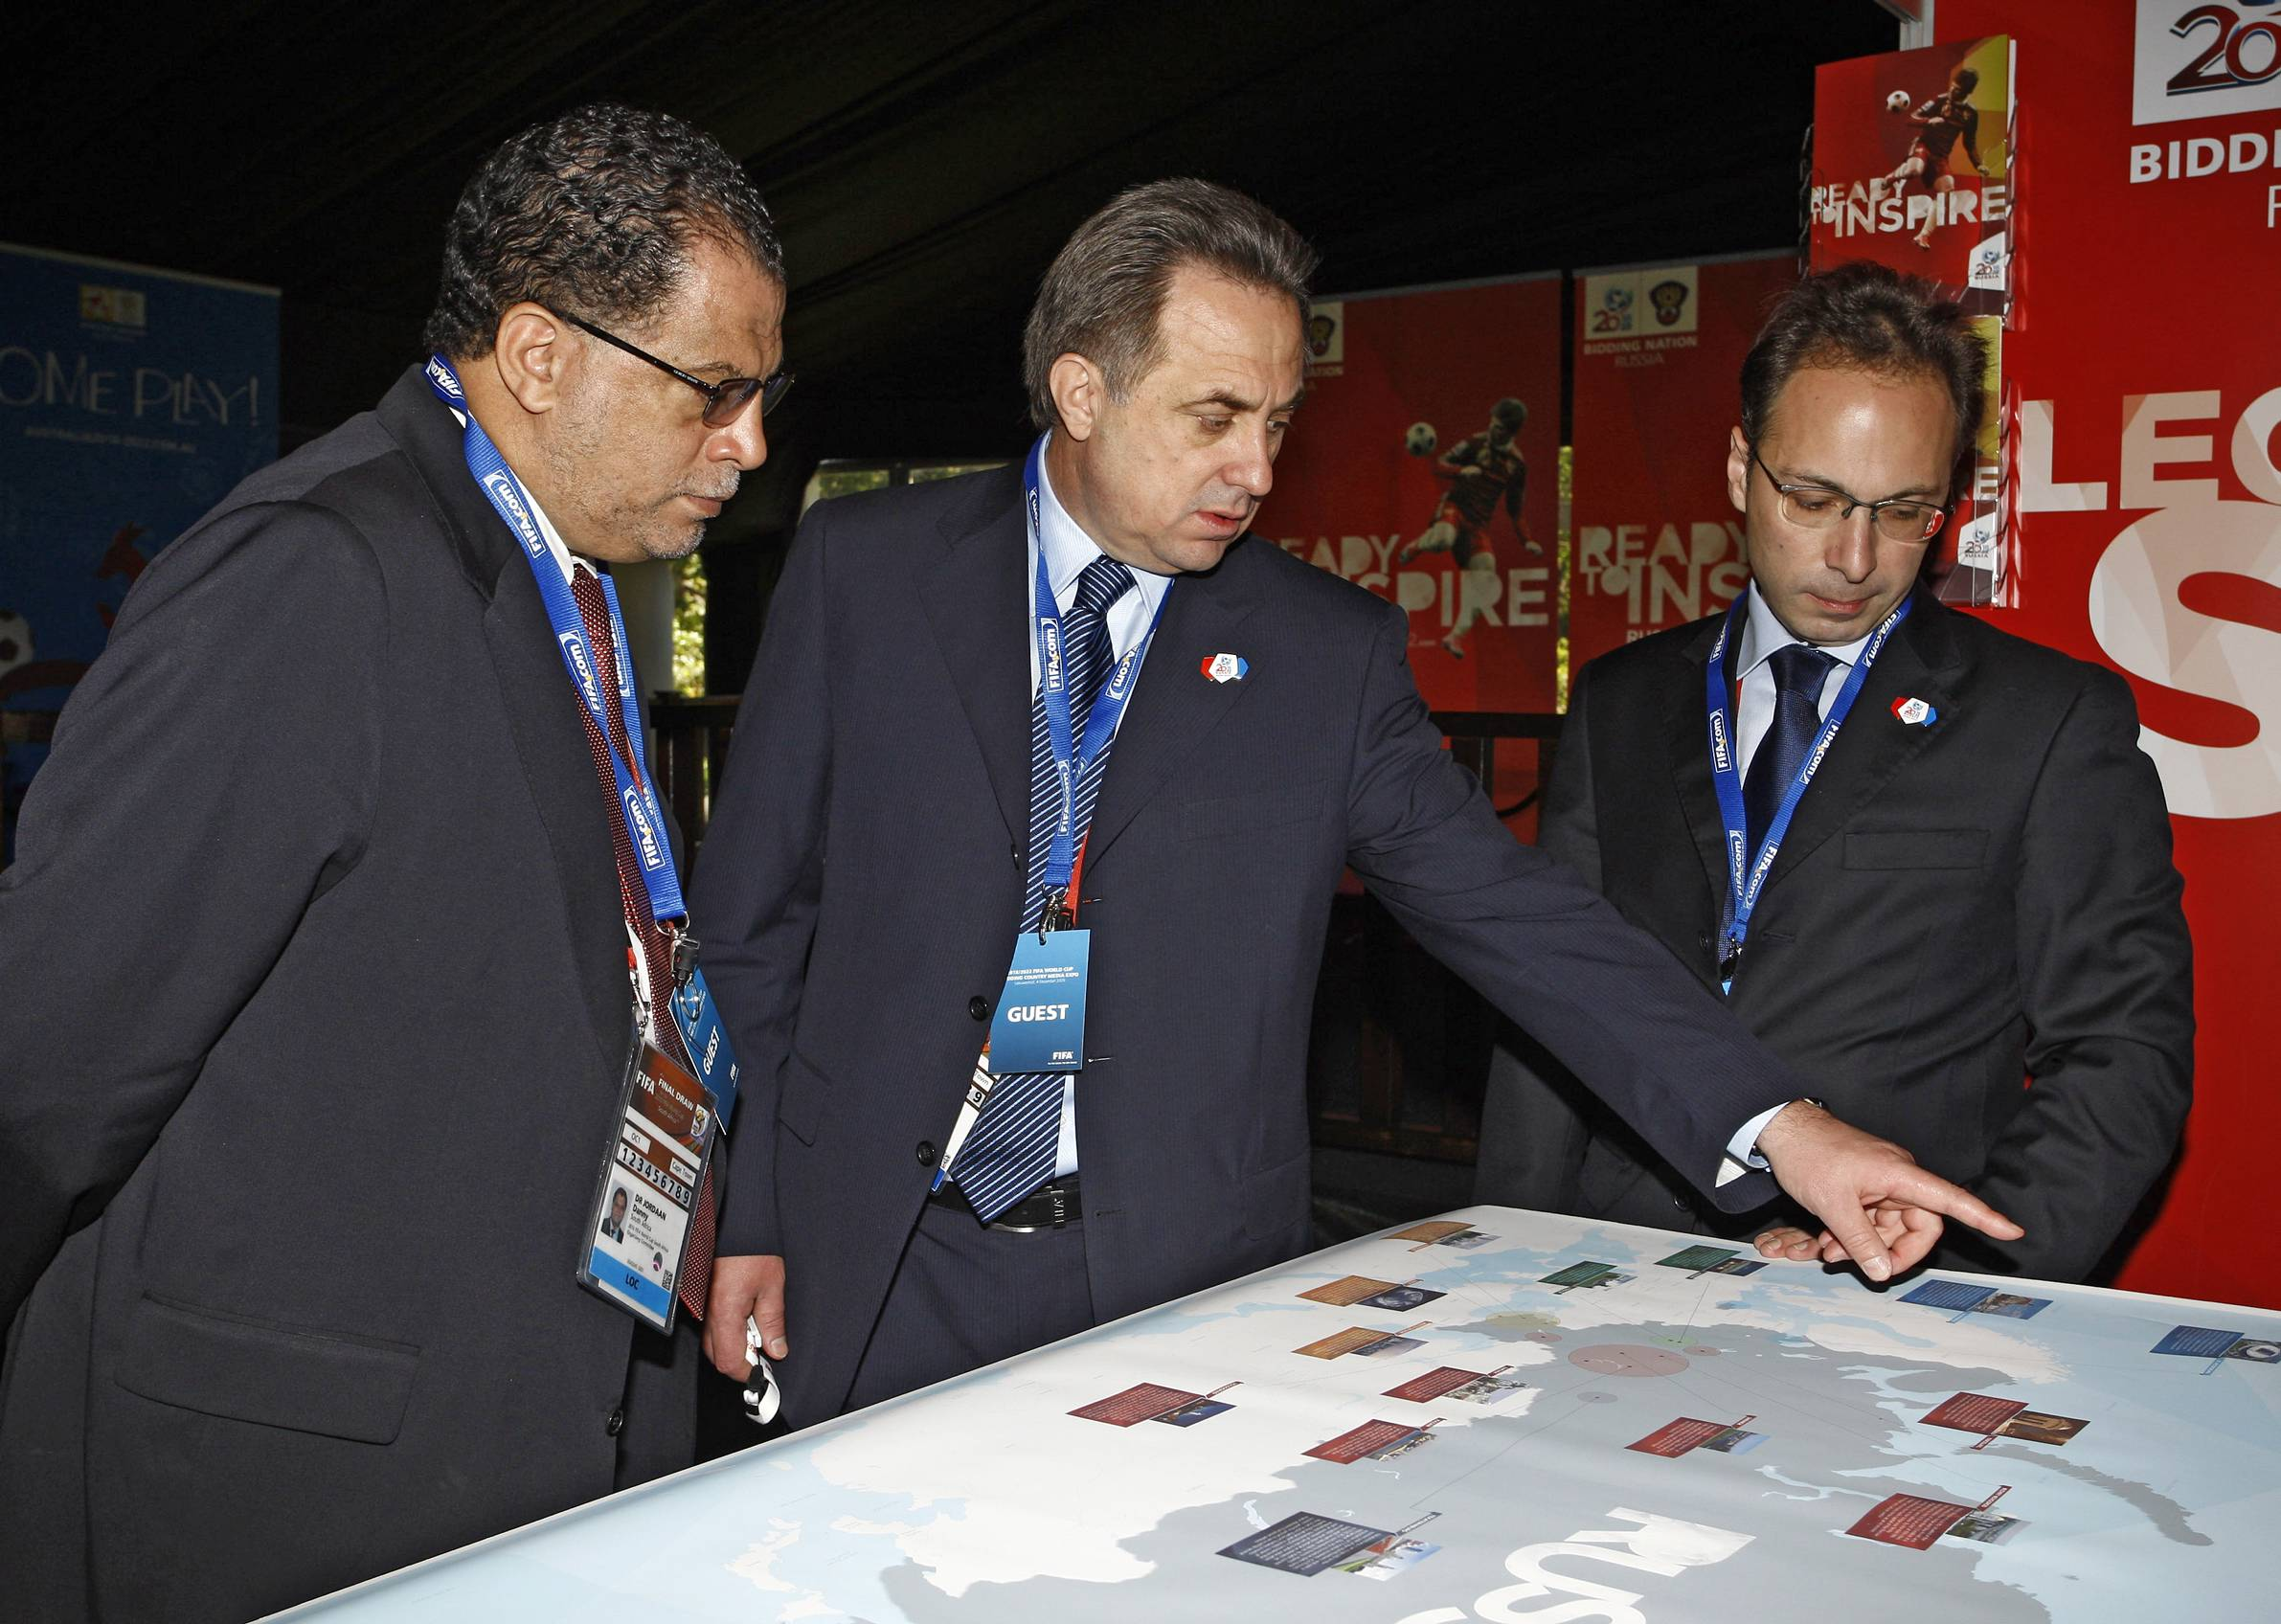 CAPE TOWN, SOUTH AFRICA - DECEMBER 4:  In this handout image provided by the 2010 FIFA World Cup Organising Committee South Africa, Vitaly Mutko (Russia Sports Minister) shows 2010 FIFA World Cup South OC CEO Danny Jordaan the Russian Bid Cities on a map